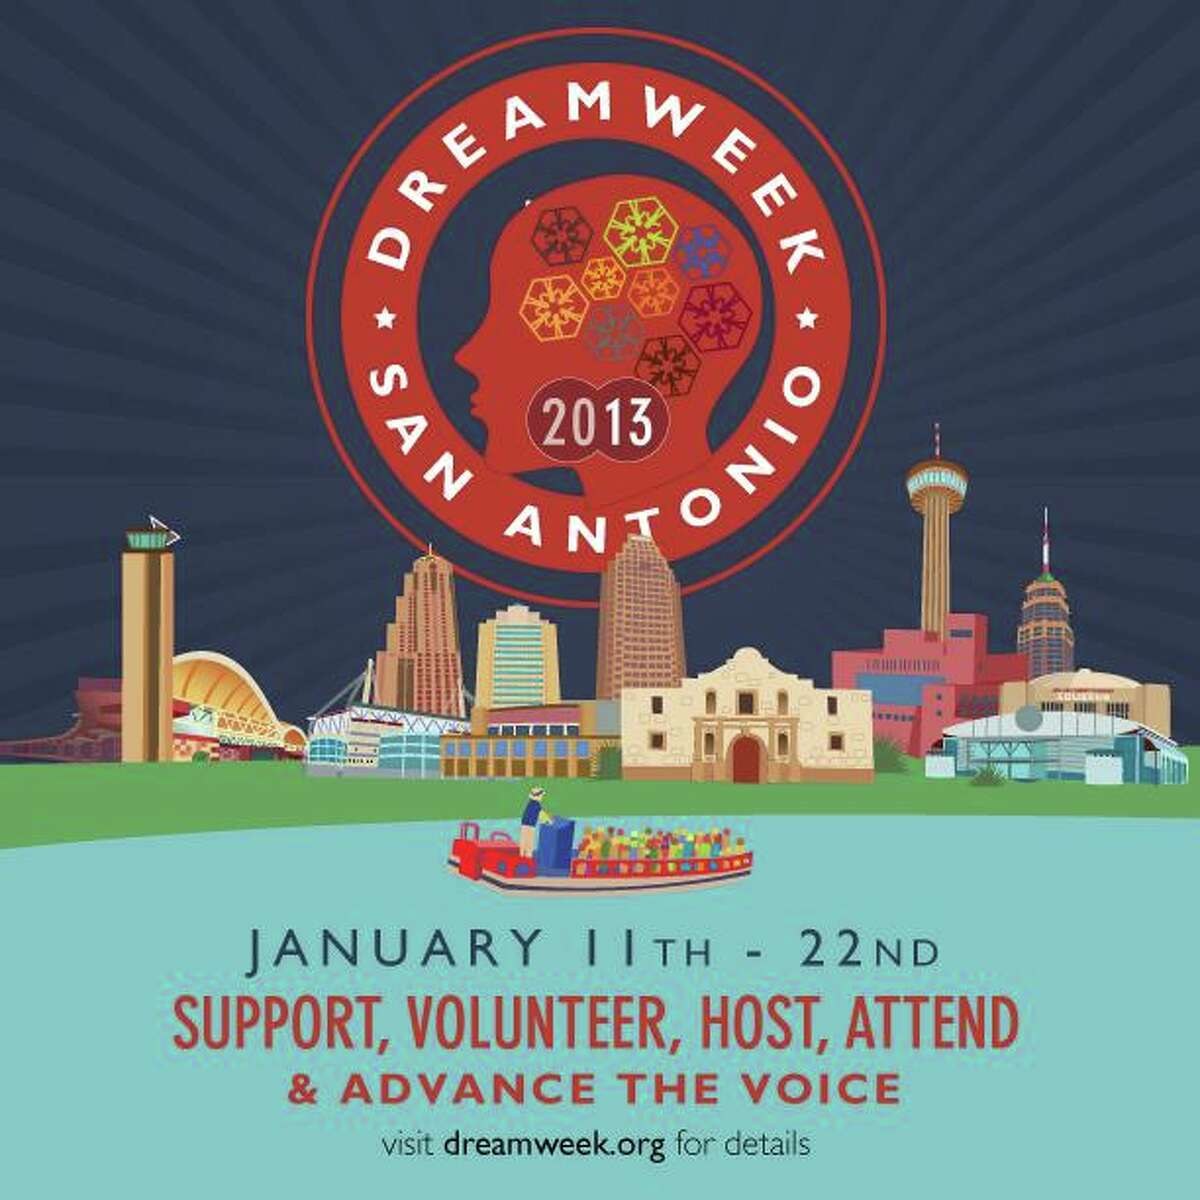 DreamWeek is a 12-day celebration of diversity and tolerance promoting an exchange of ideas on universal issues to be held throughout the downtown area.